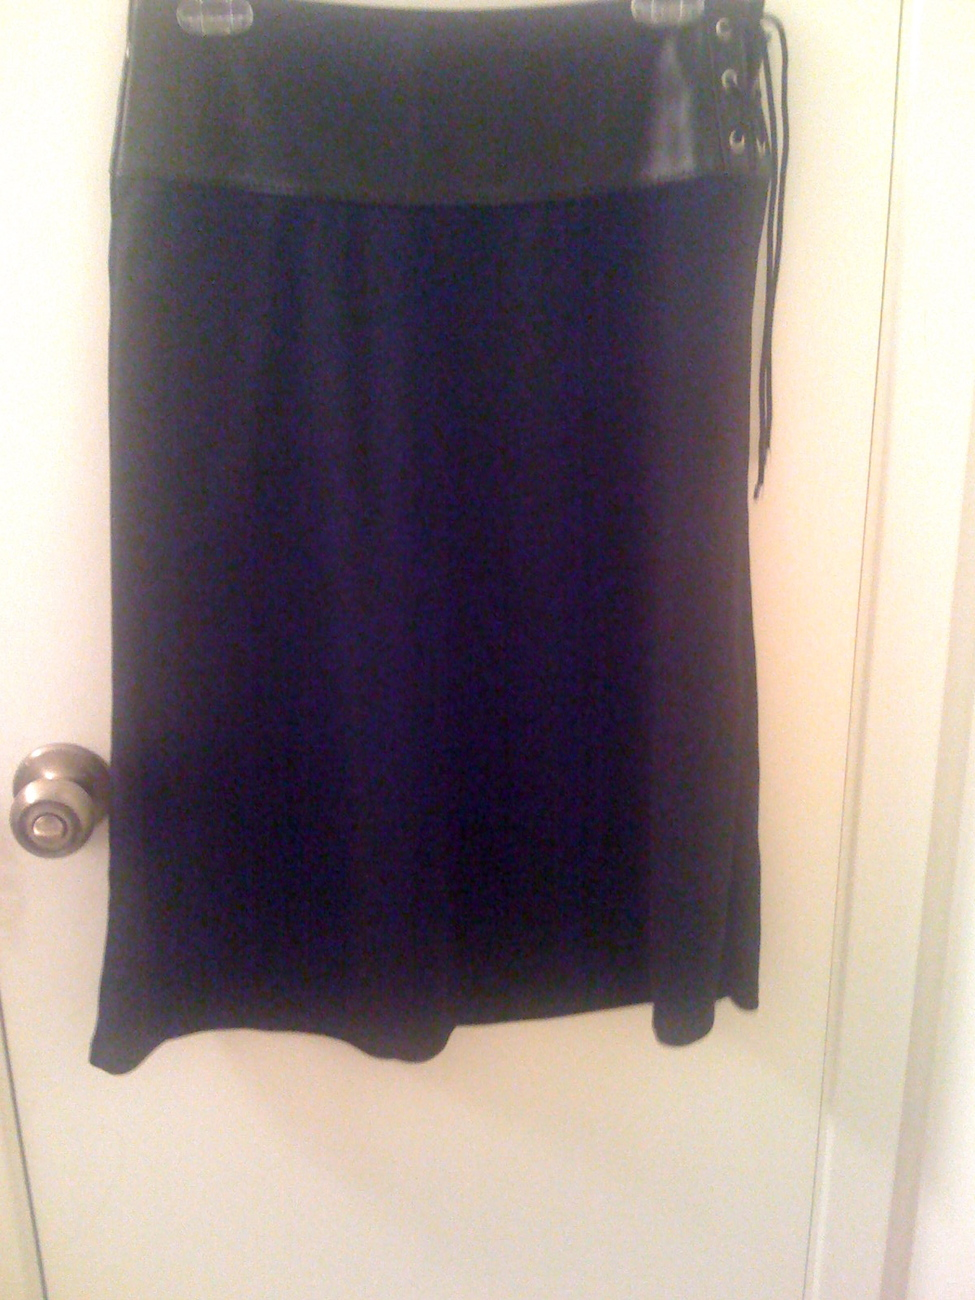 MICHAEL KORS black leather band skirt with tie accents size 4 NEW RARE